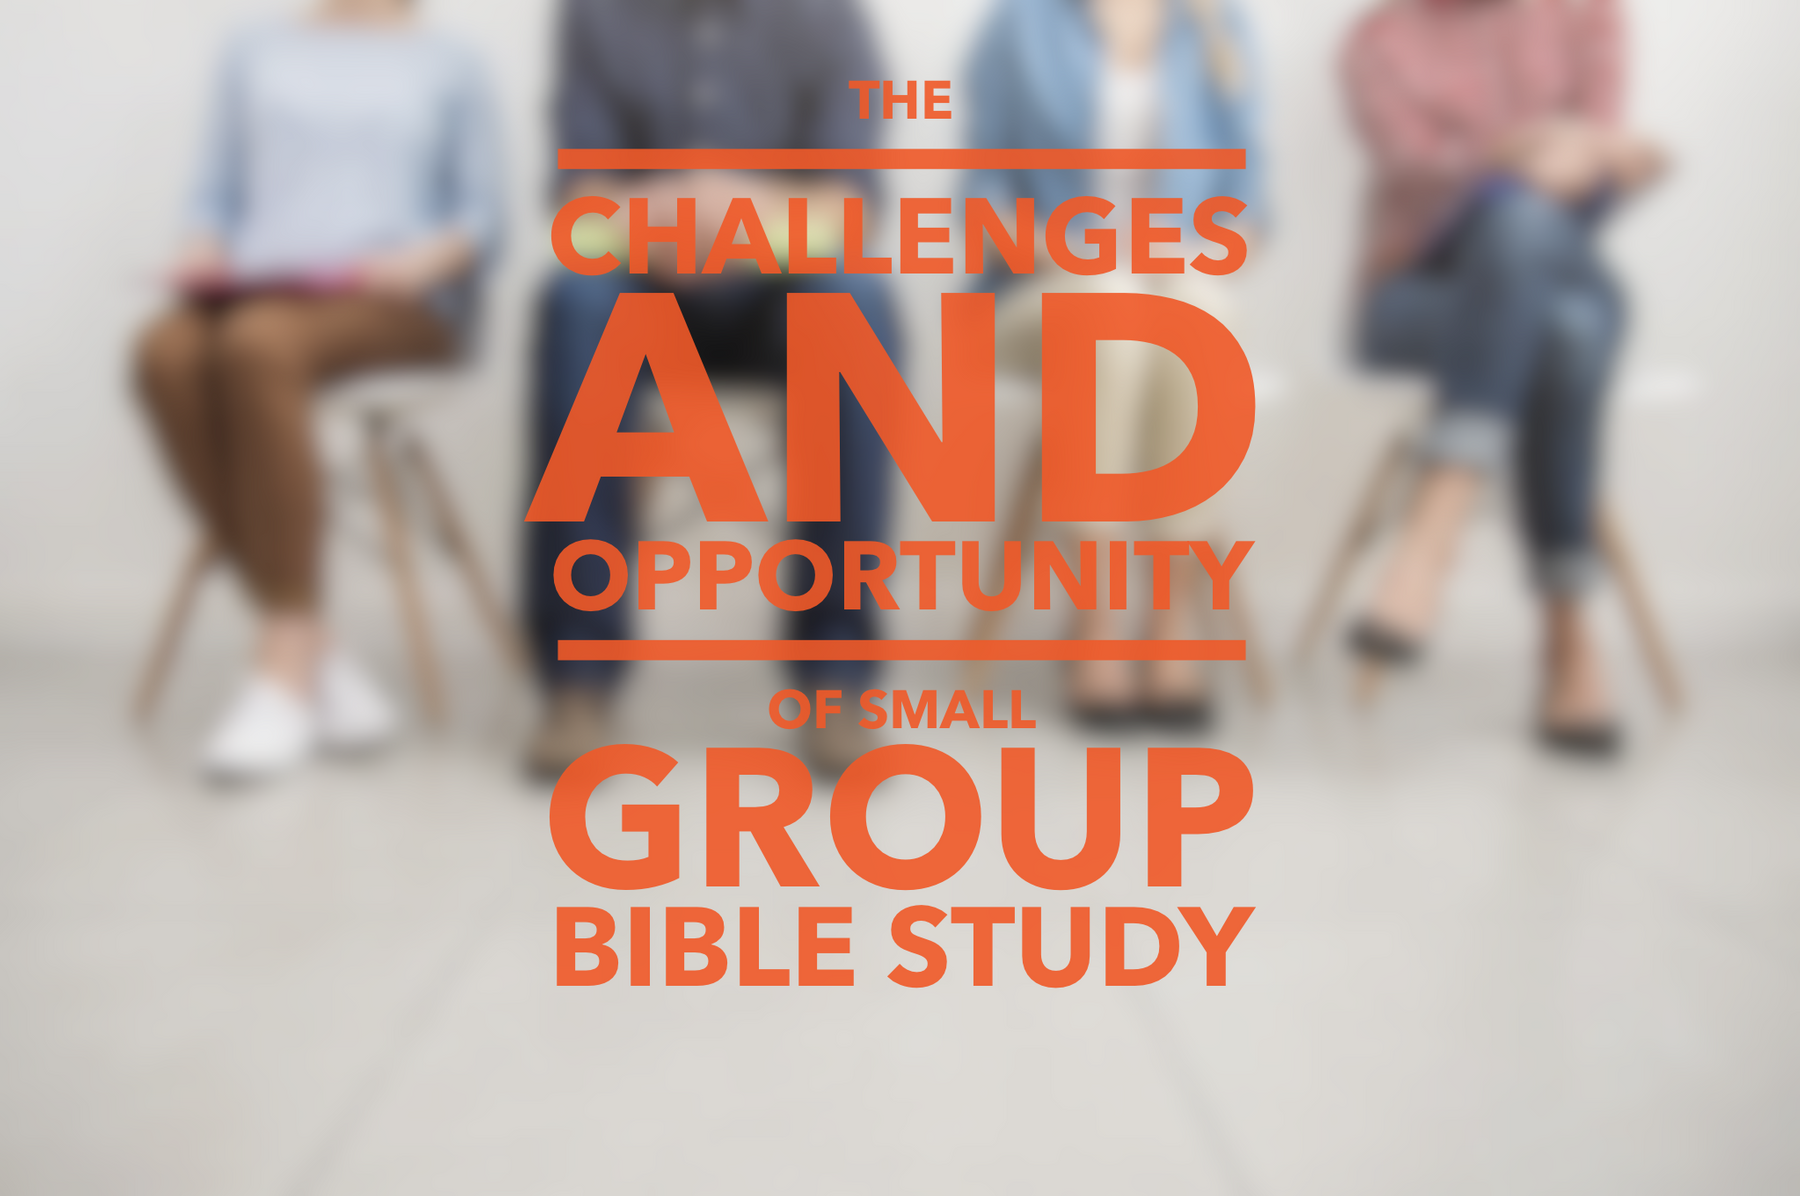 The Challenges And Opportunities Of Small Group Bible Study